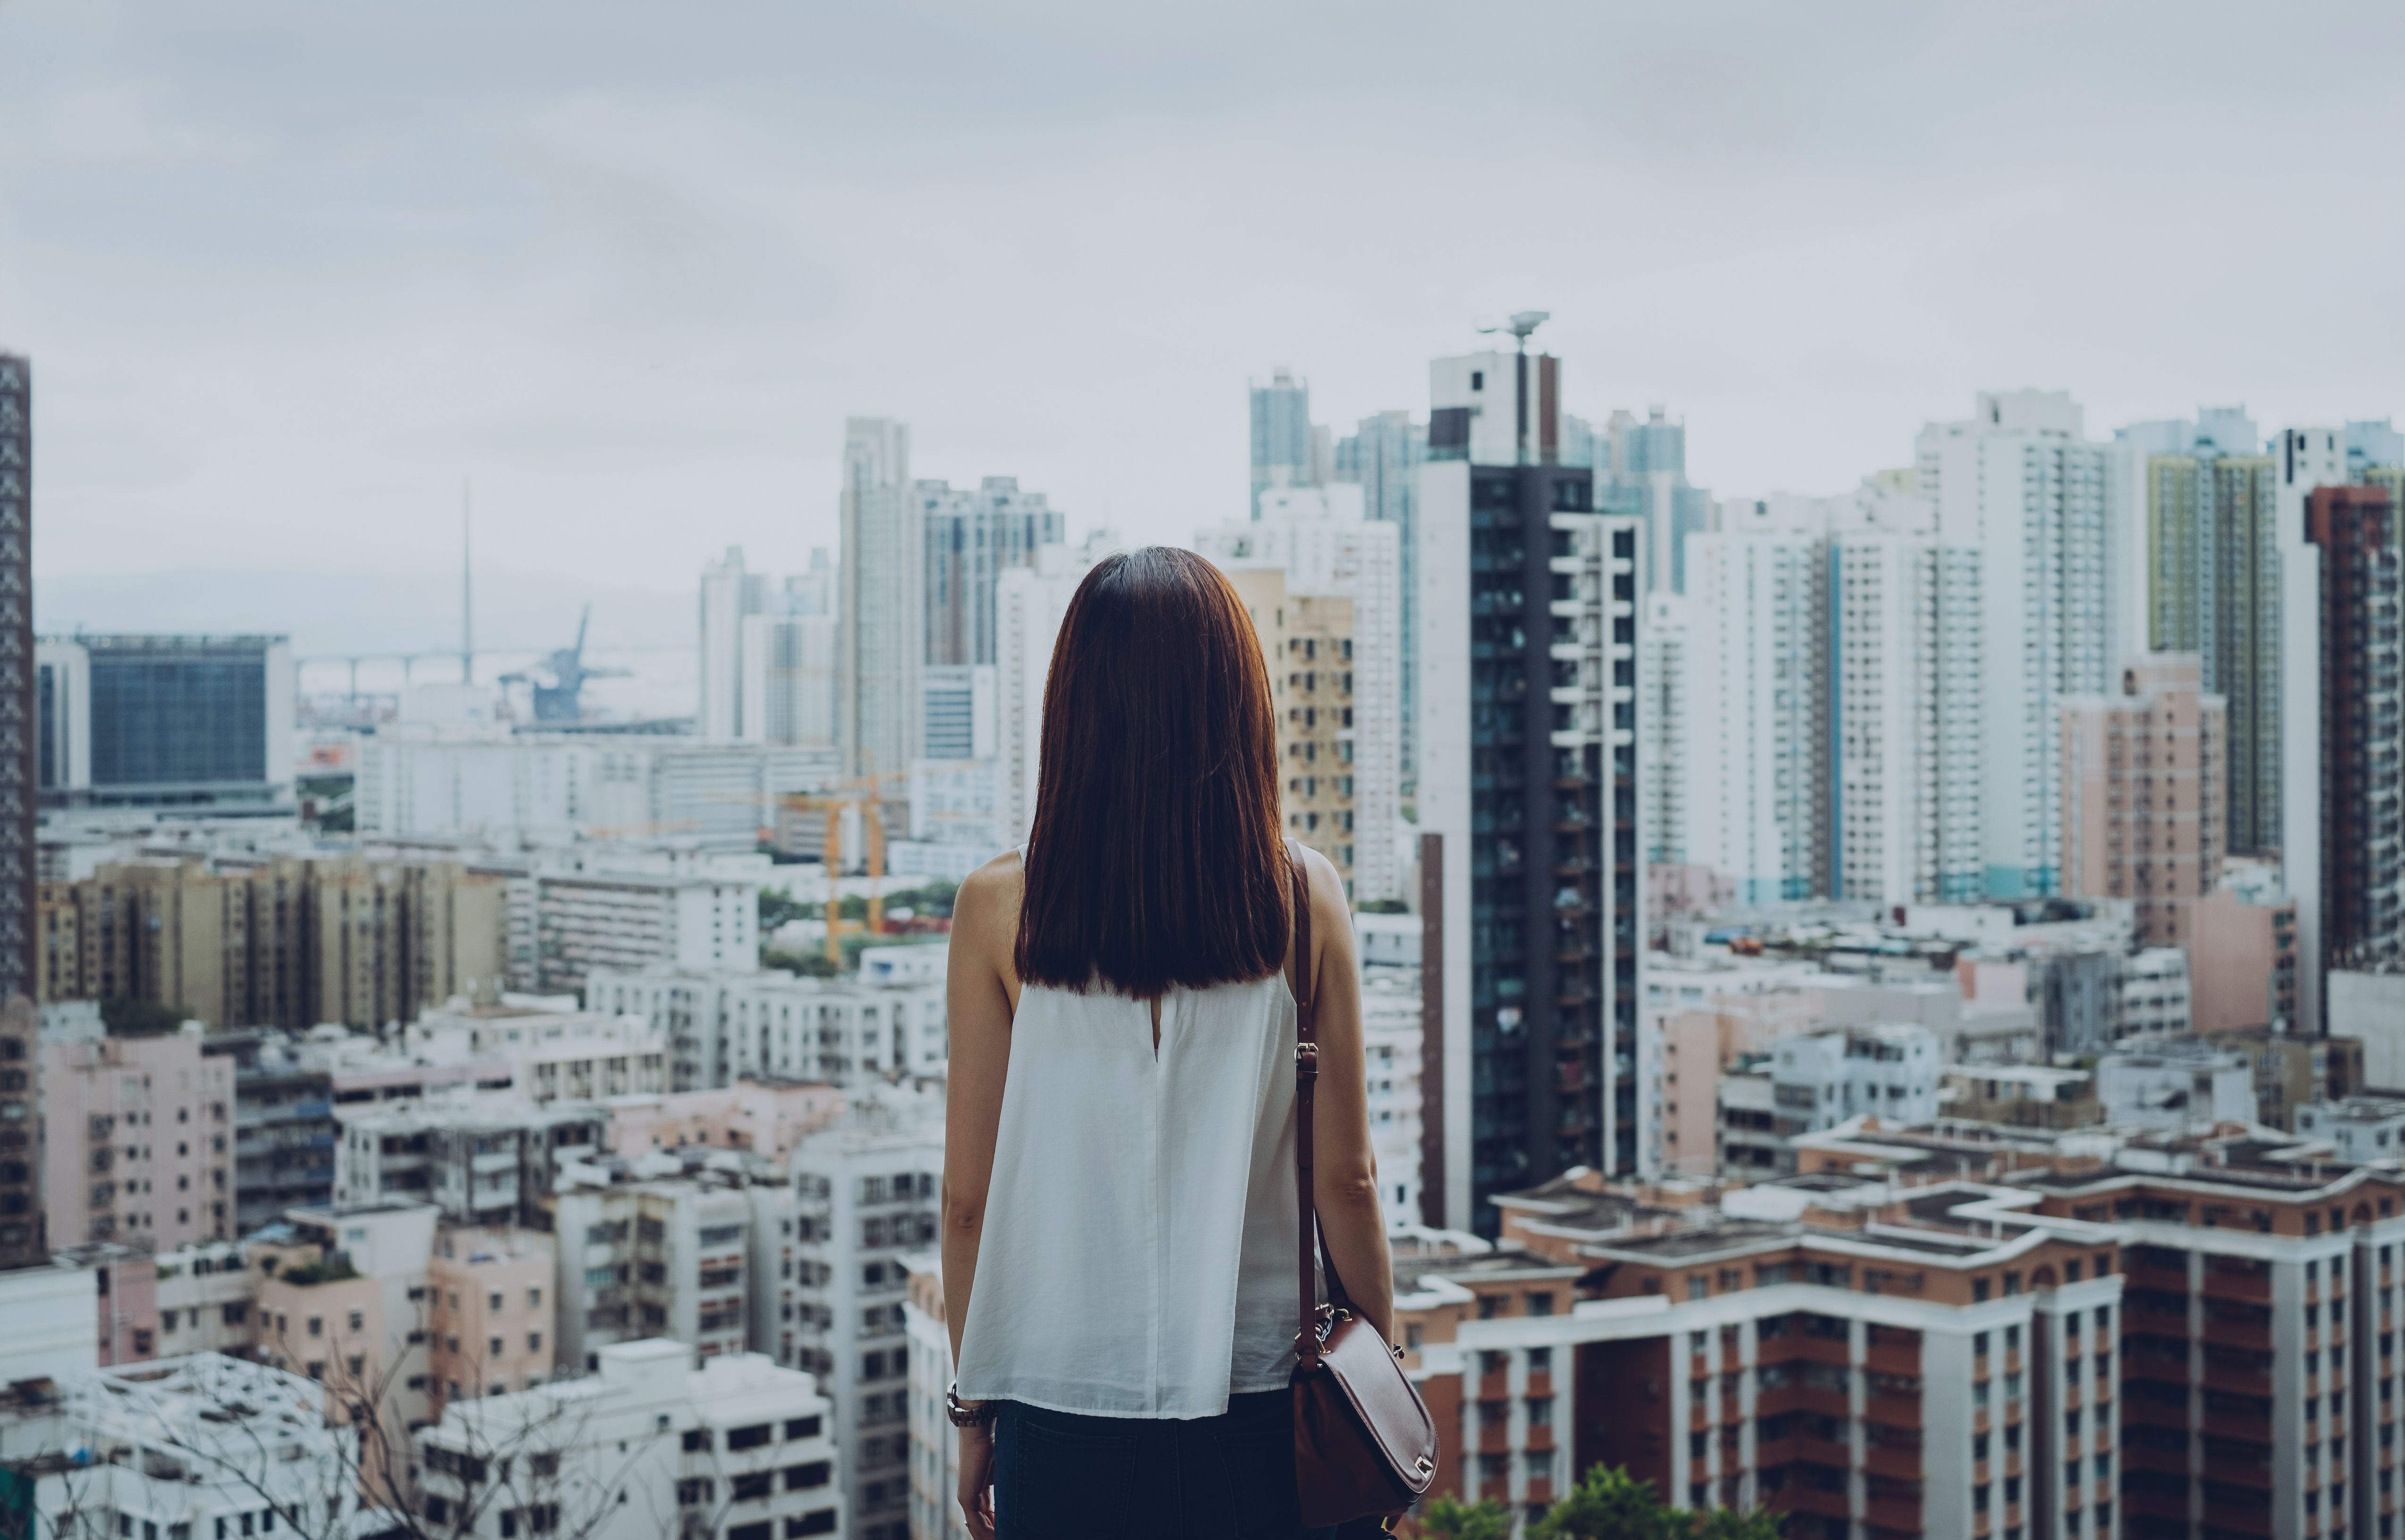 Rear view of woman overlooking busy and energetic cityscape of Hong Kong